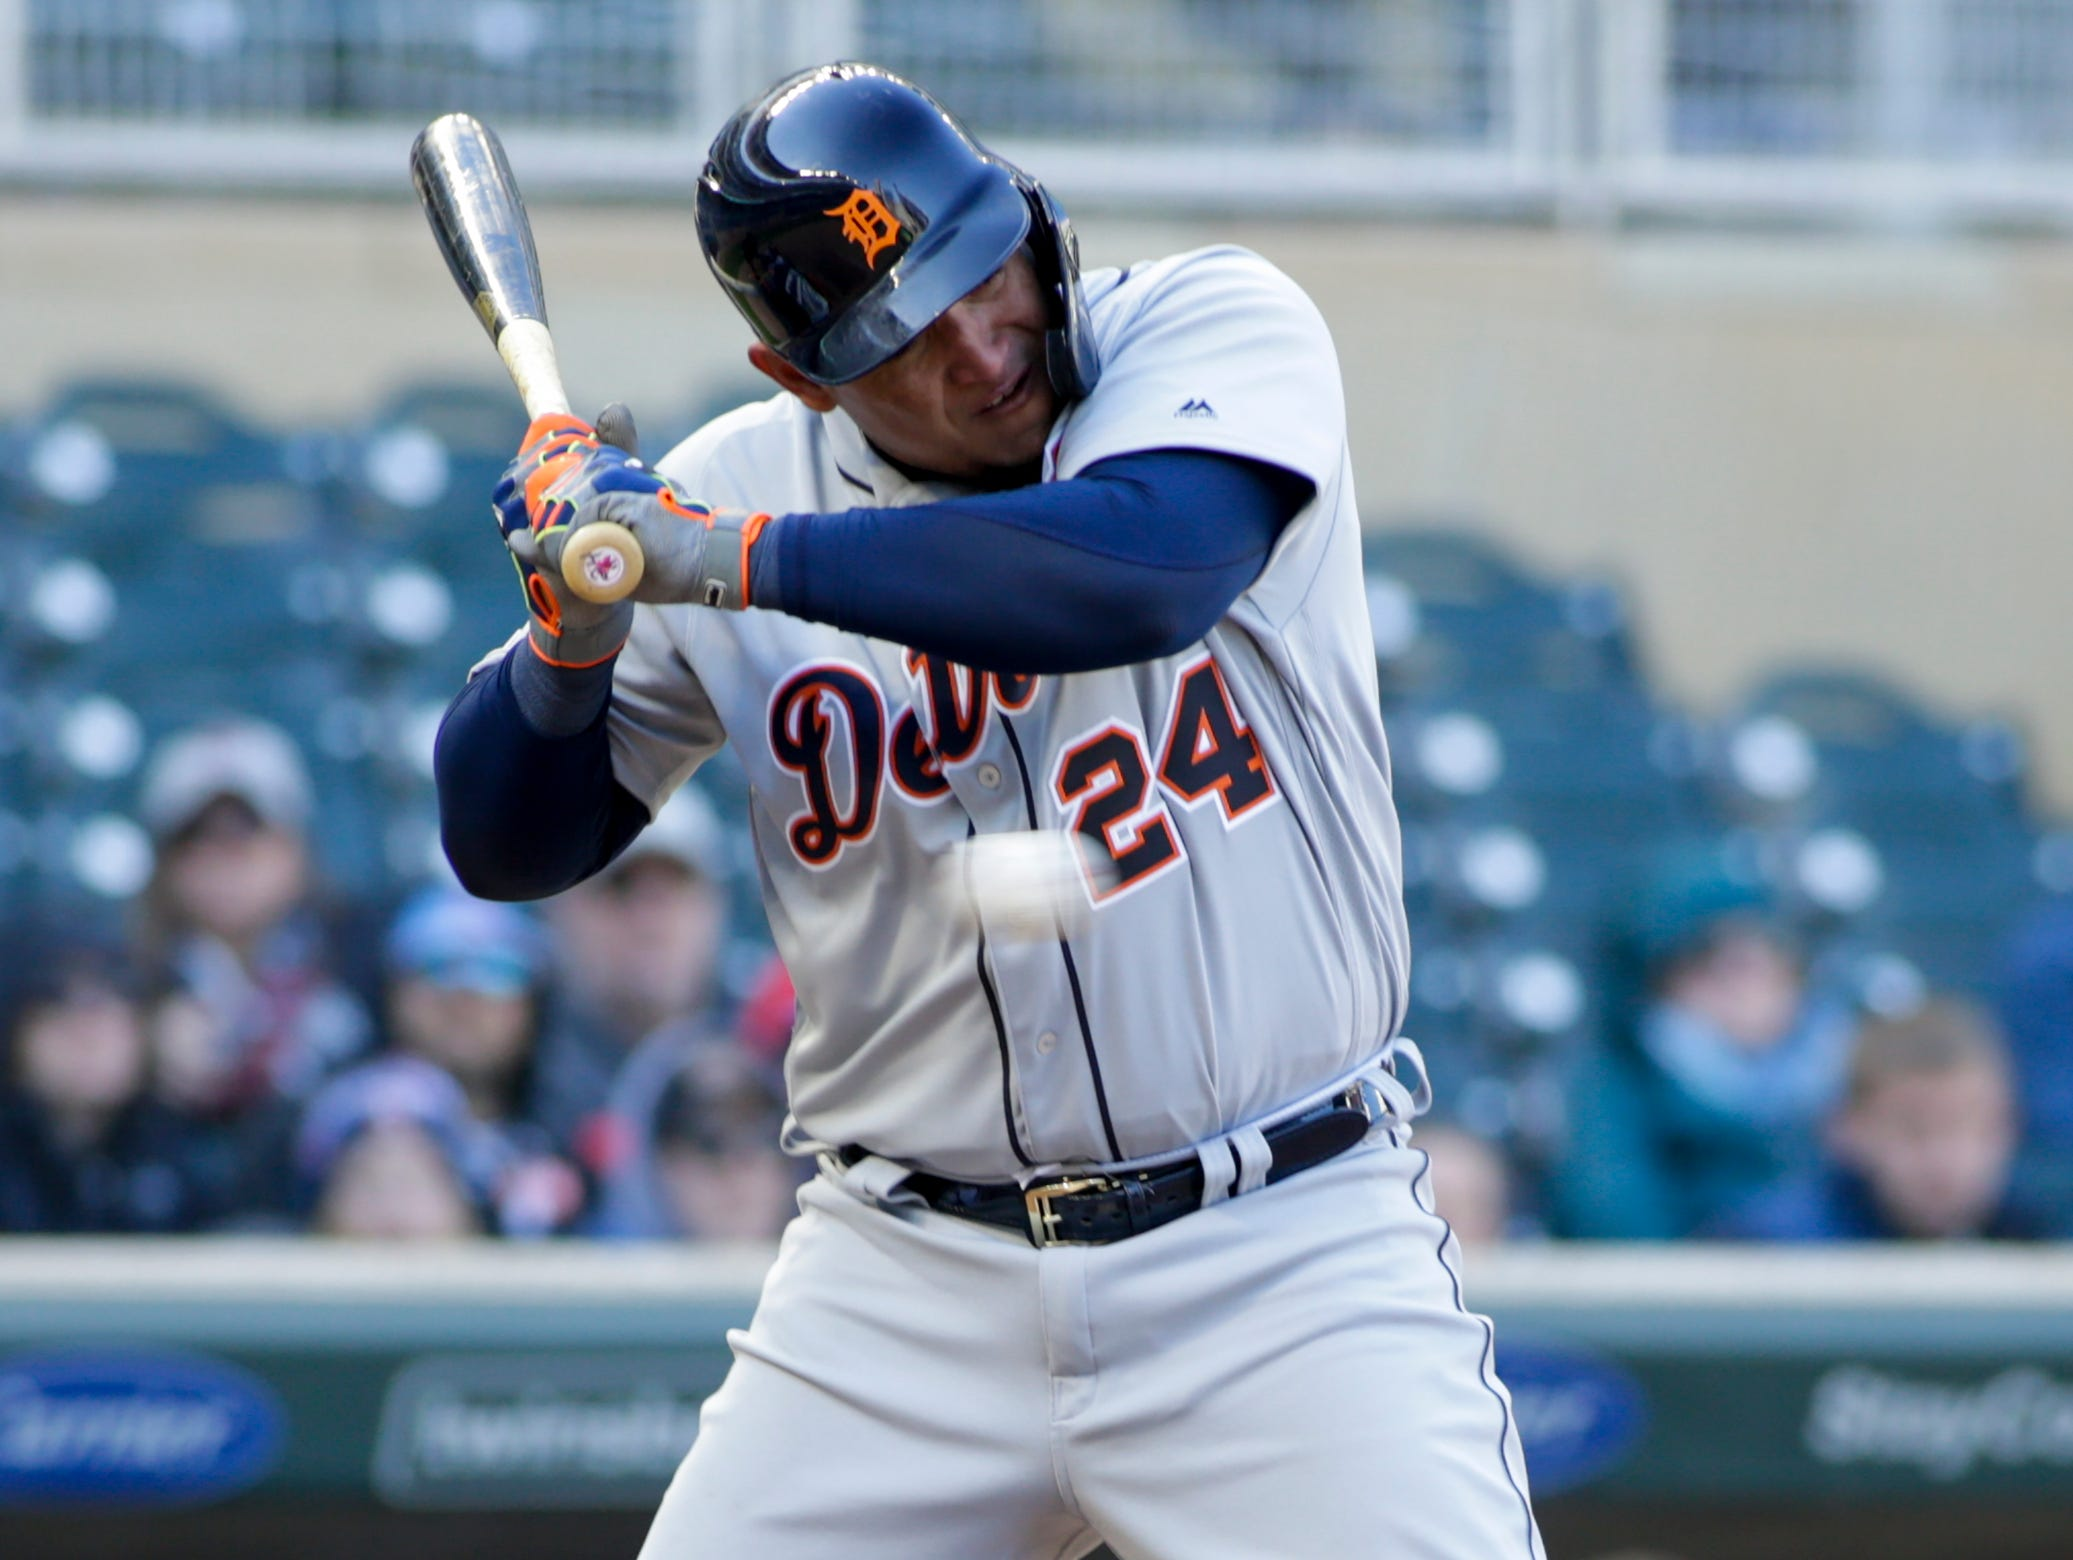 Detroit Tigers' Miguel Cabrera (24) ducks to get out of the way of an inside pitch during the ninth inning.